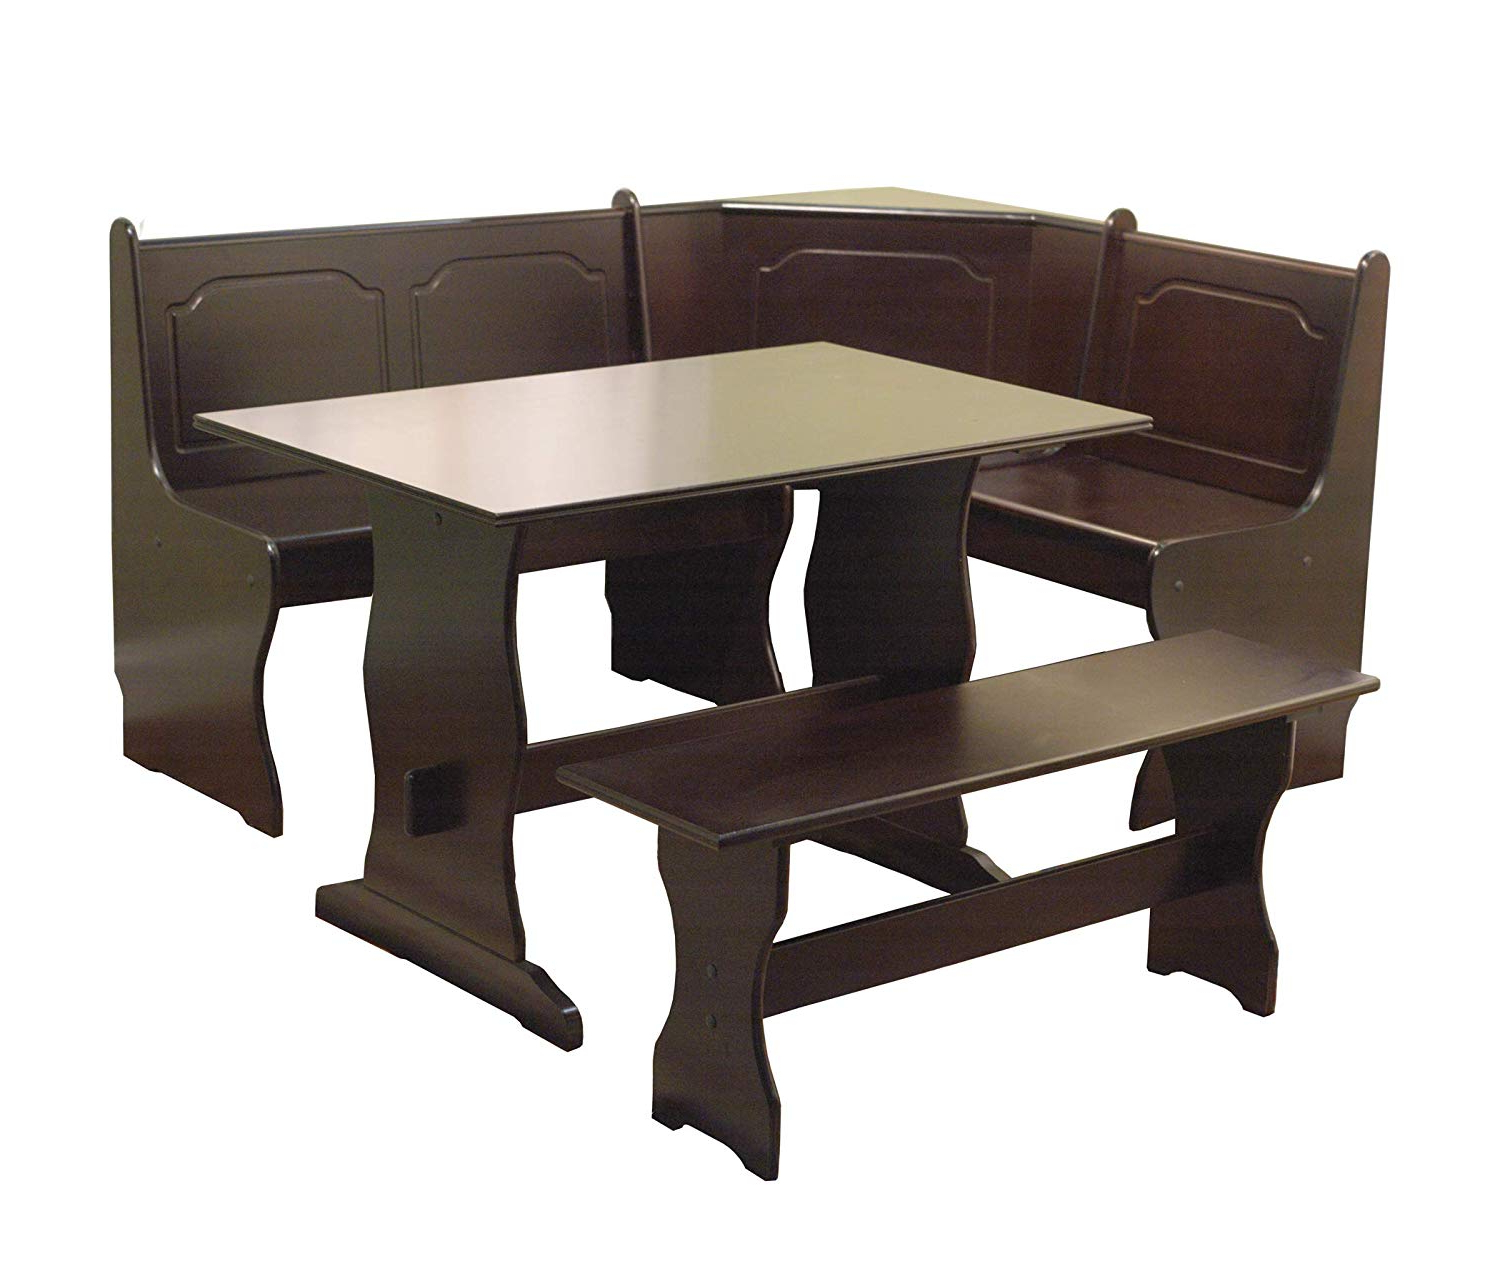 Ligon 3 Piece Breakfast Nook Dining Sets With Regard To 2019 Amazon: Target Marketing Systems 3 Piece Breakfast Nook Dining (View 8 of 25)